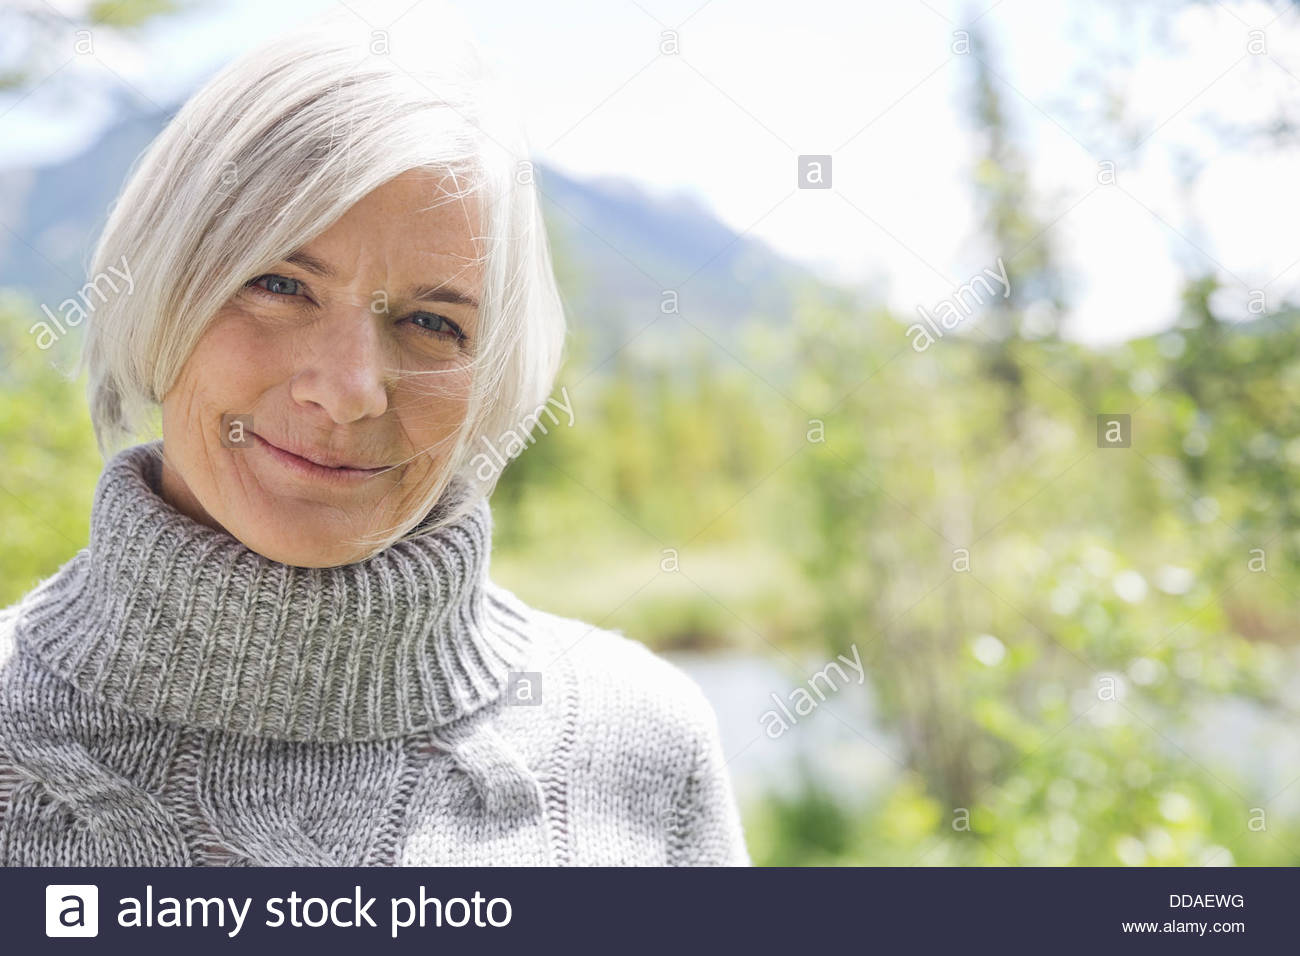 Close-up of mature woman smiling in forest - Stock Image